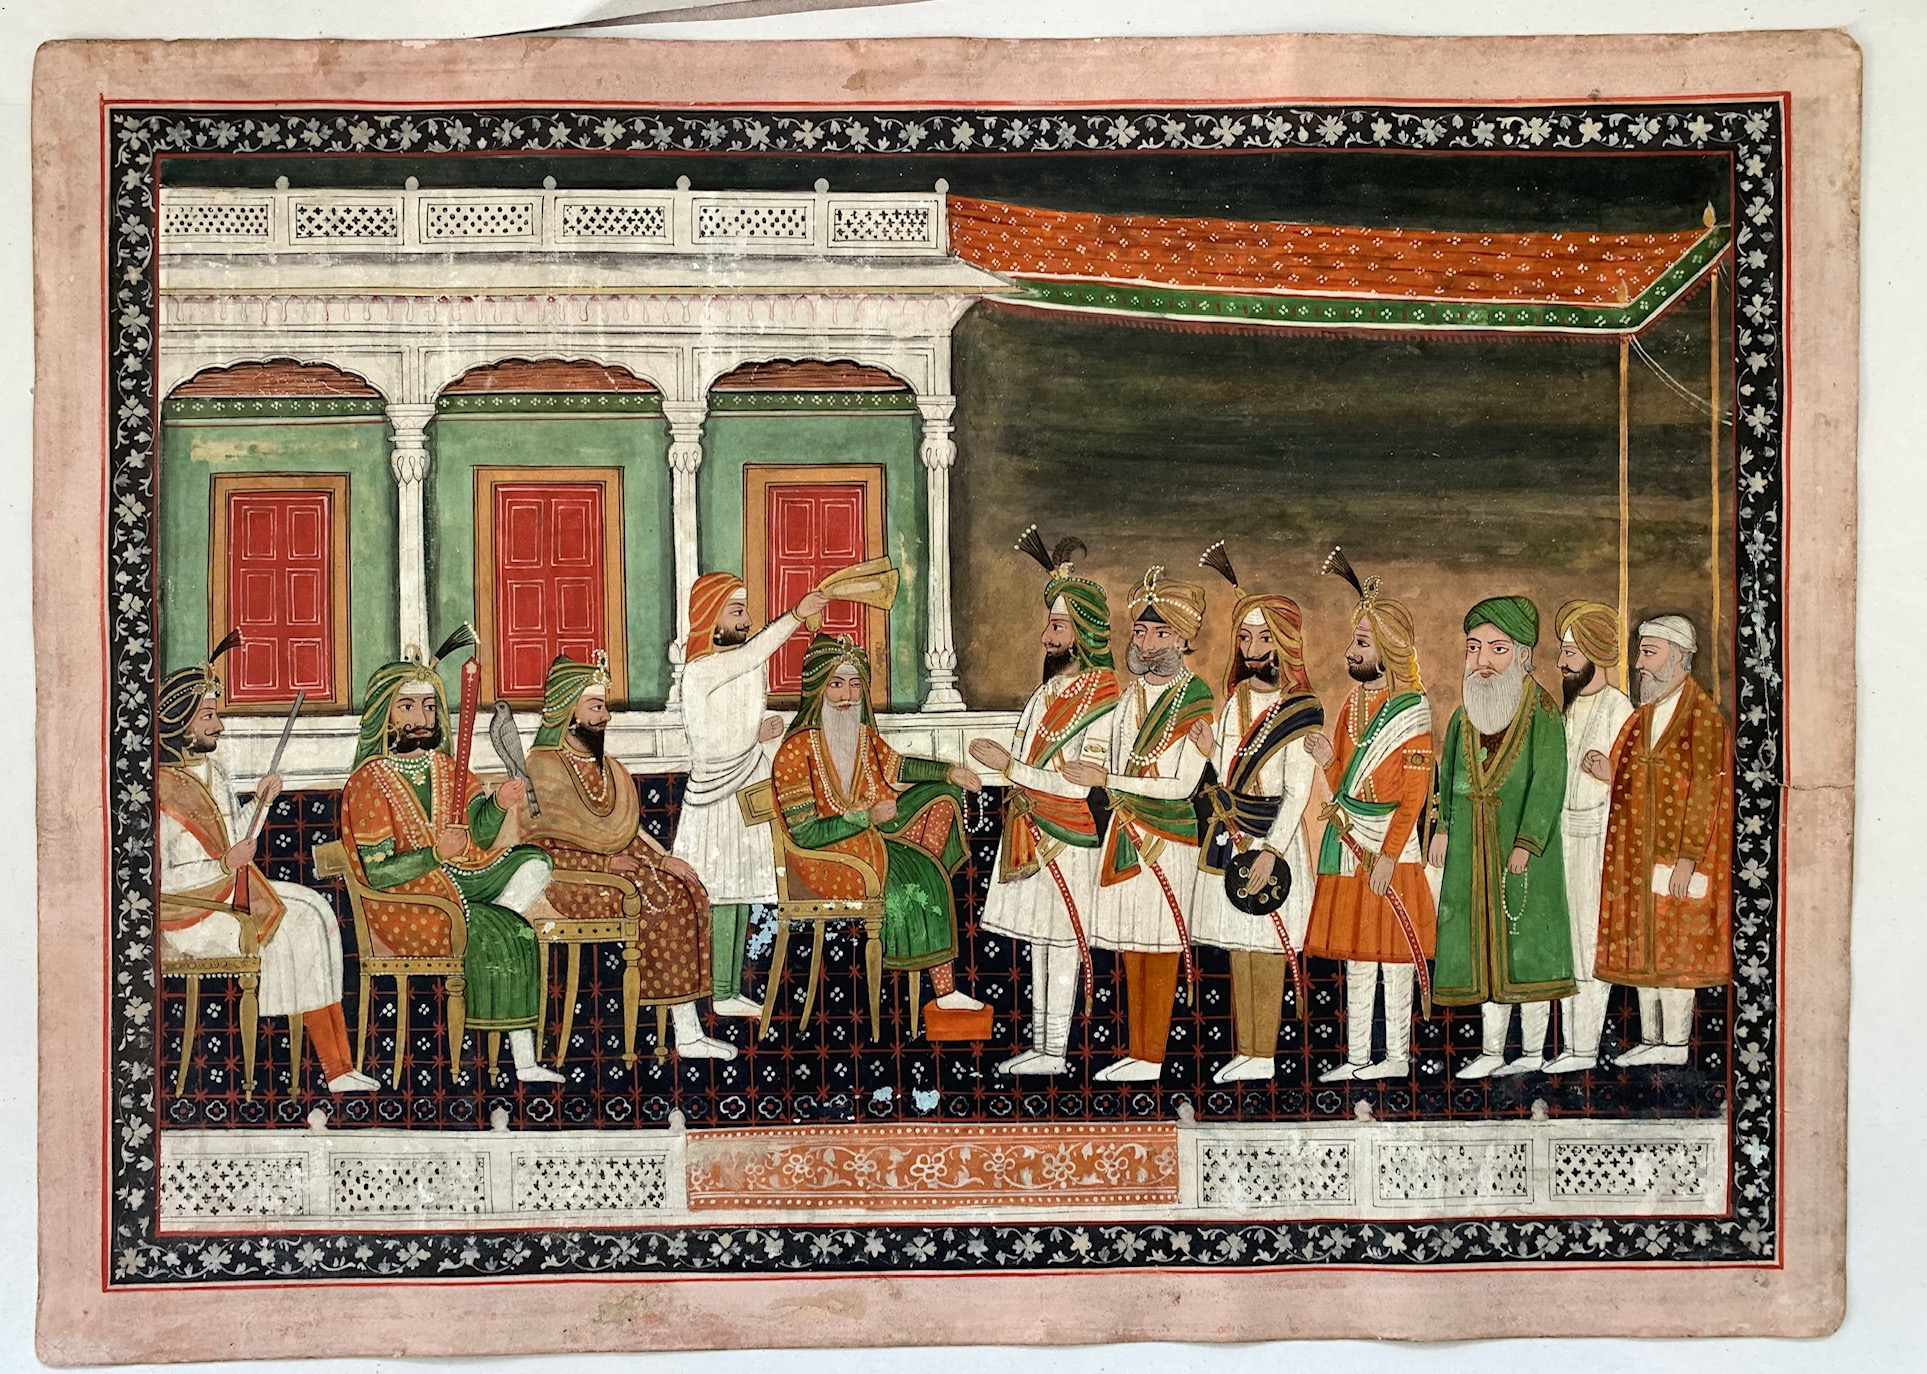 A painting of the court of Ranjit Singh. Photo courtesy: Manraj S Sekhon